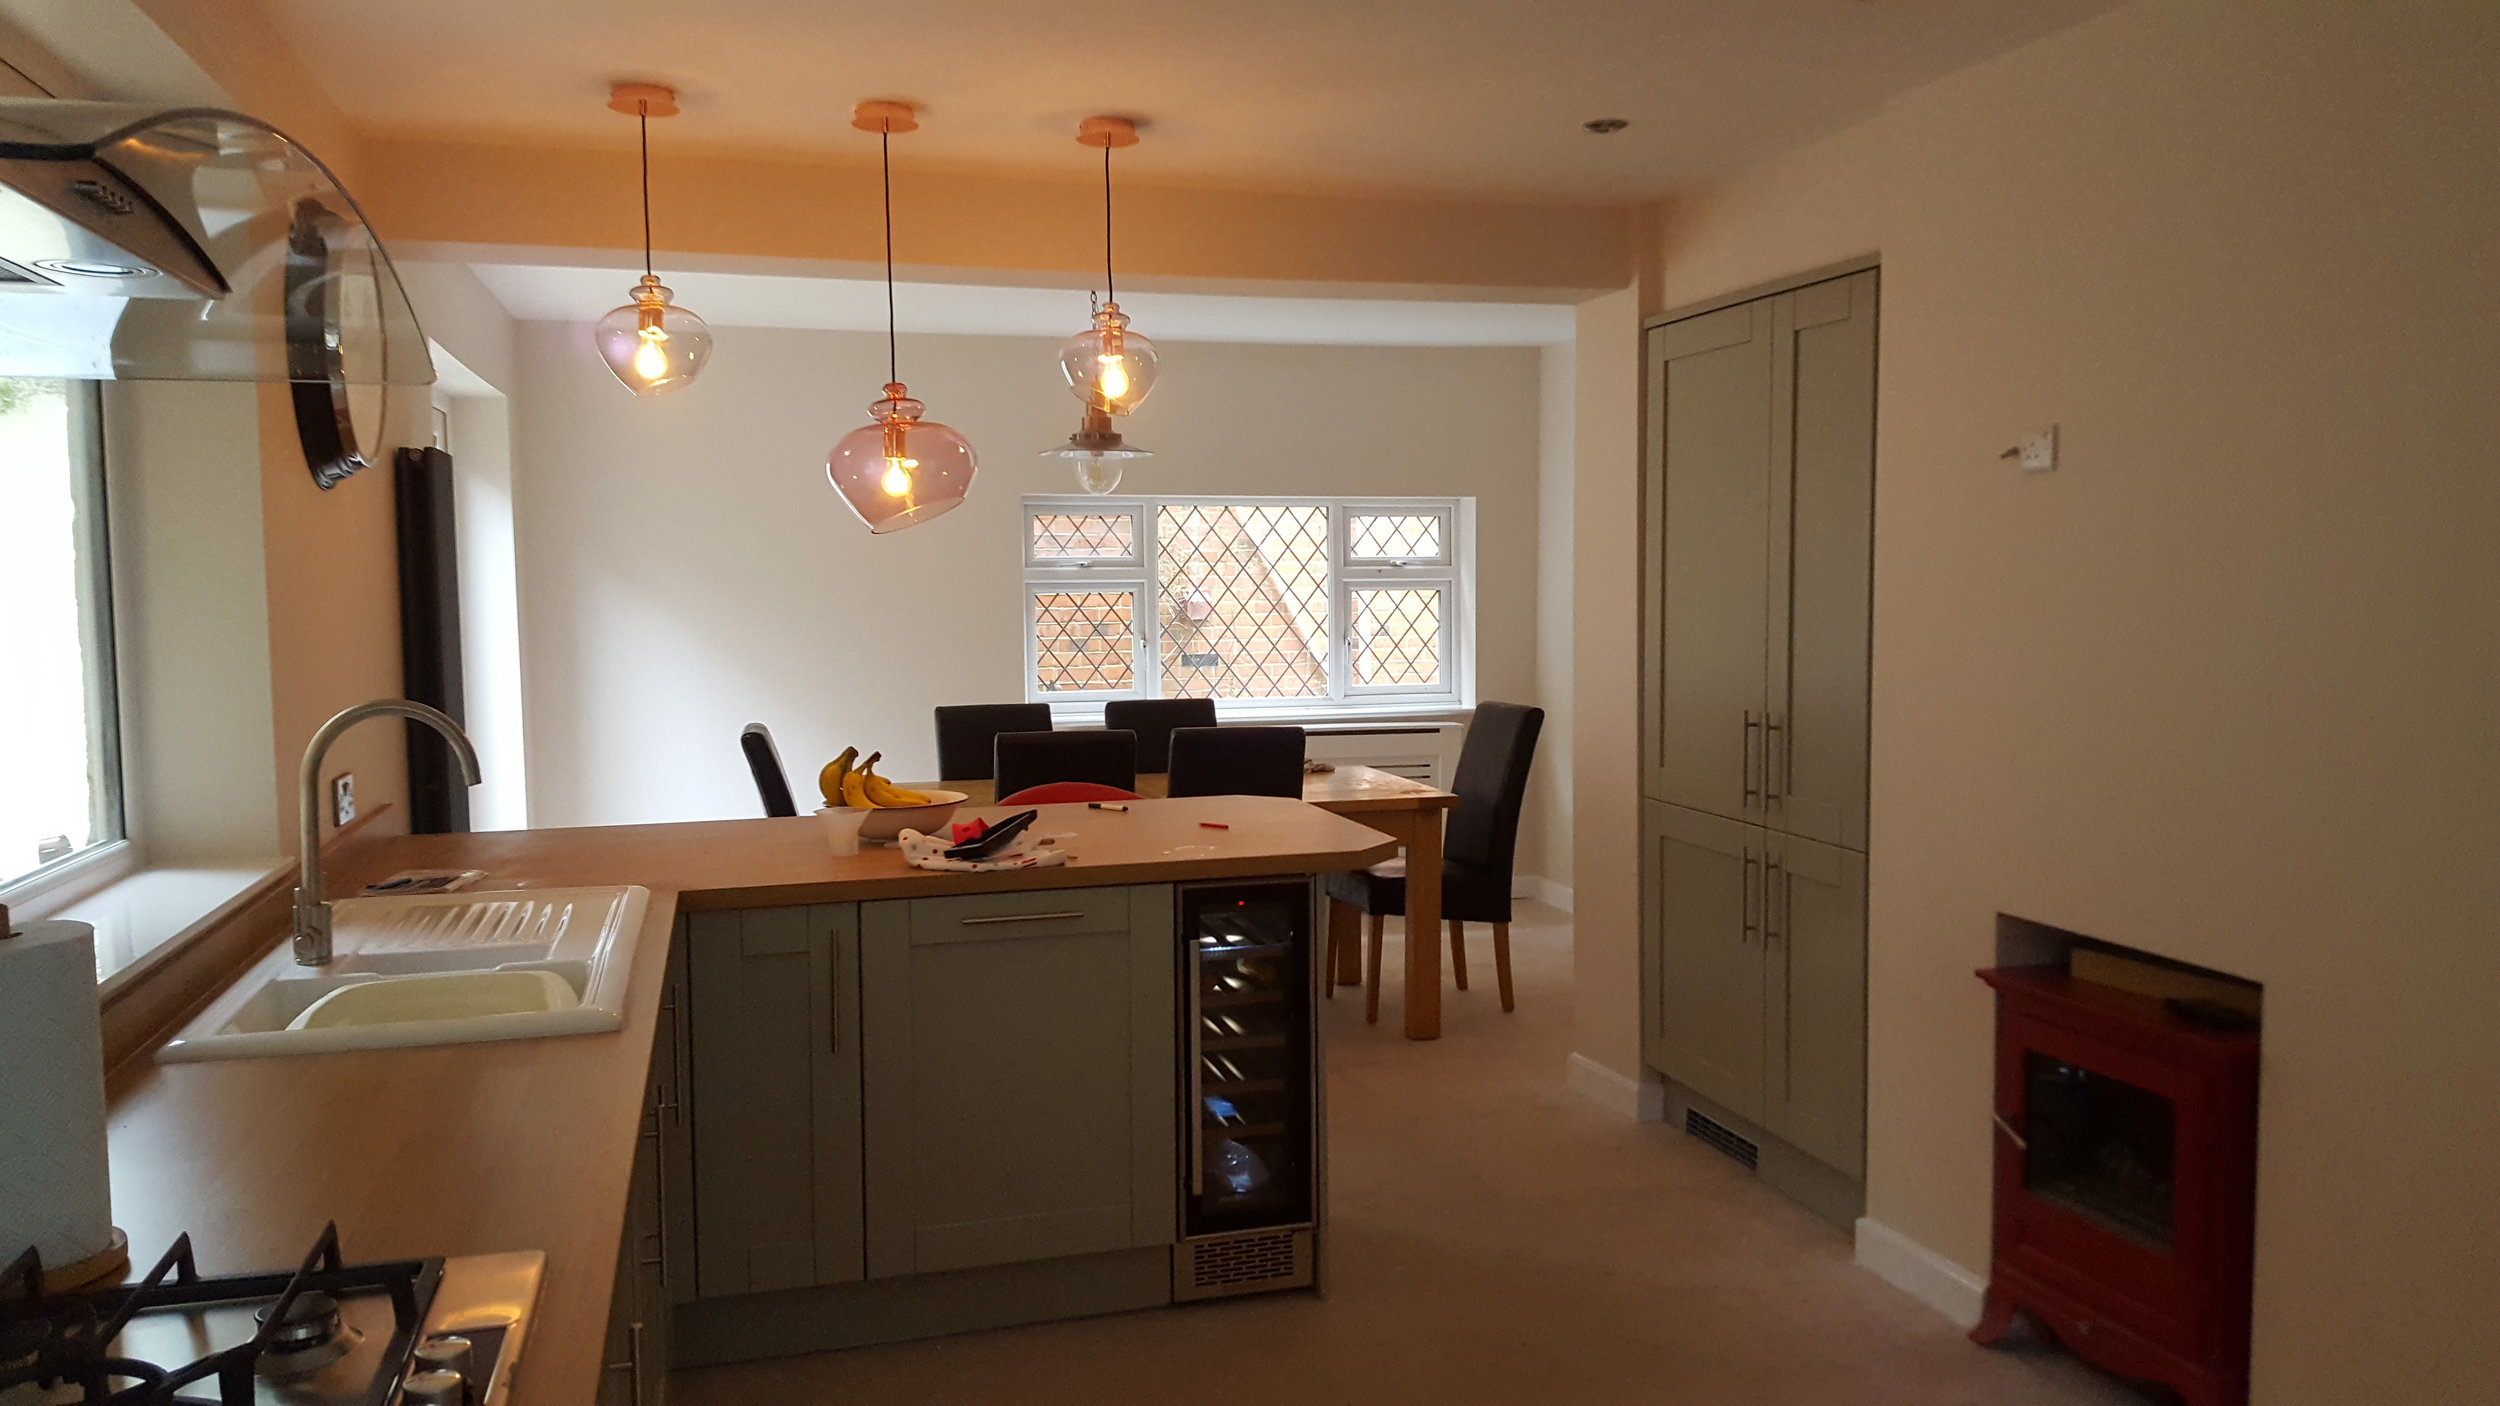 Kitchen AFTER painting from Dorking Decorators